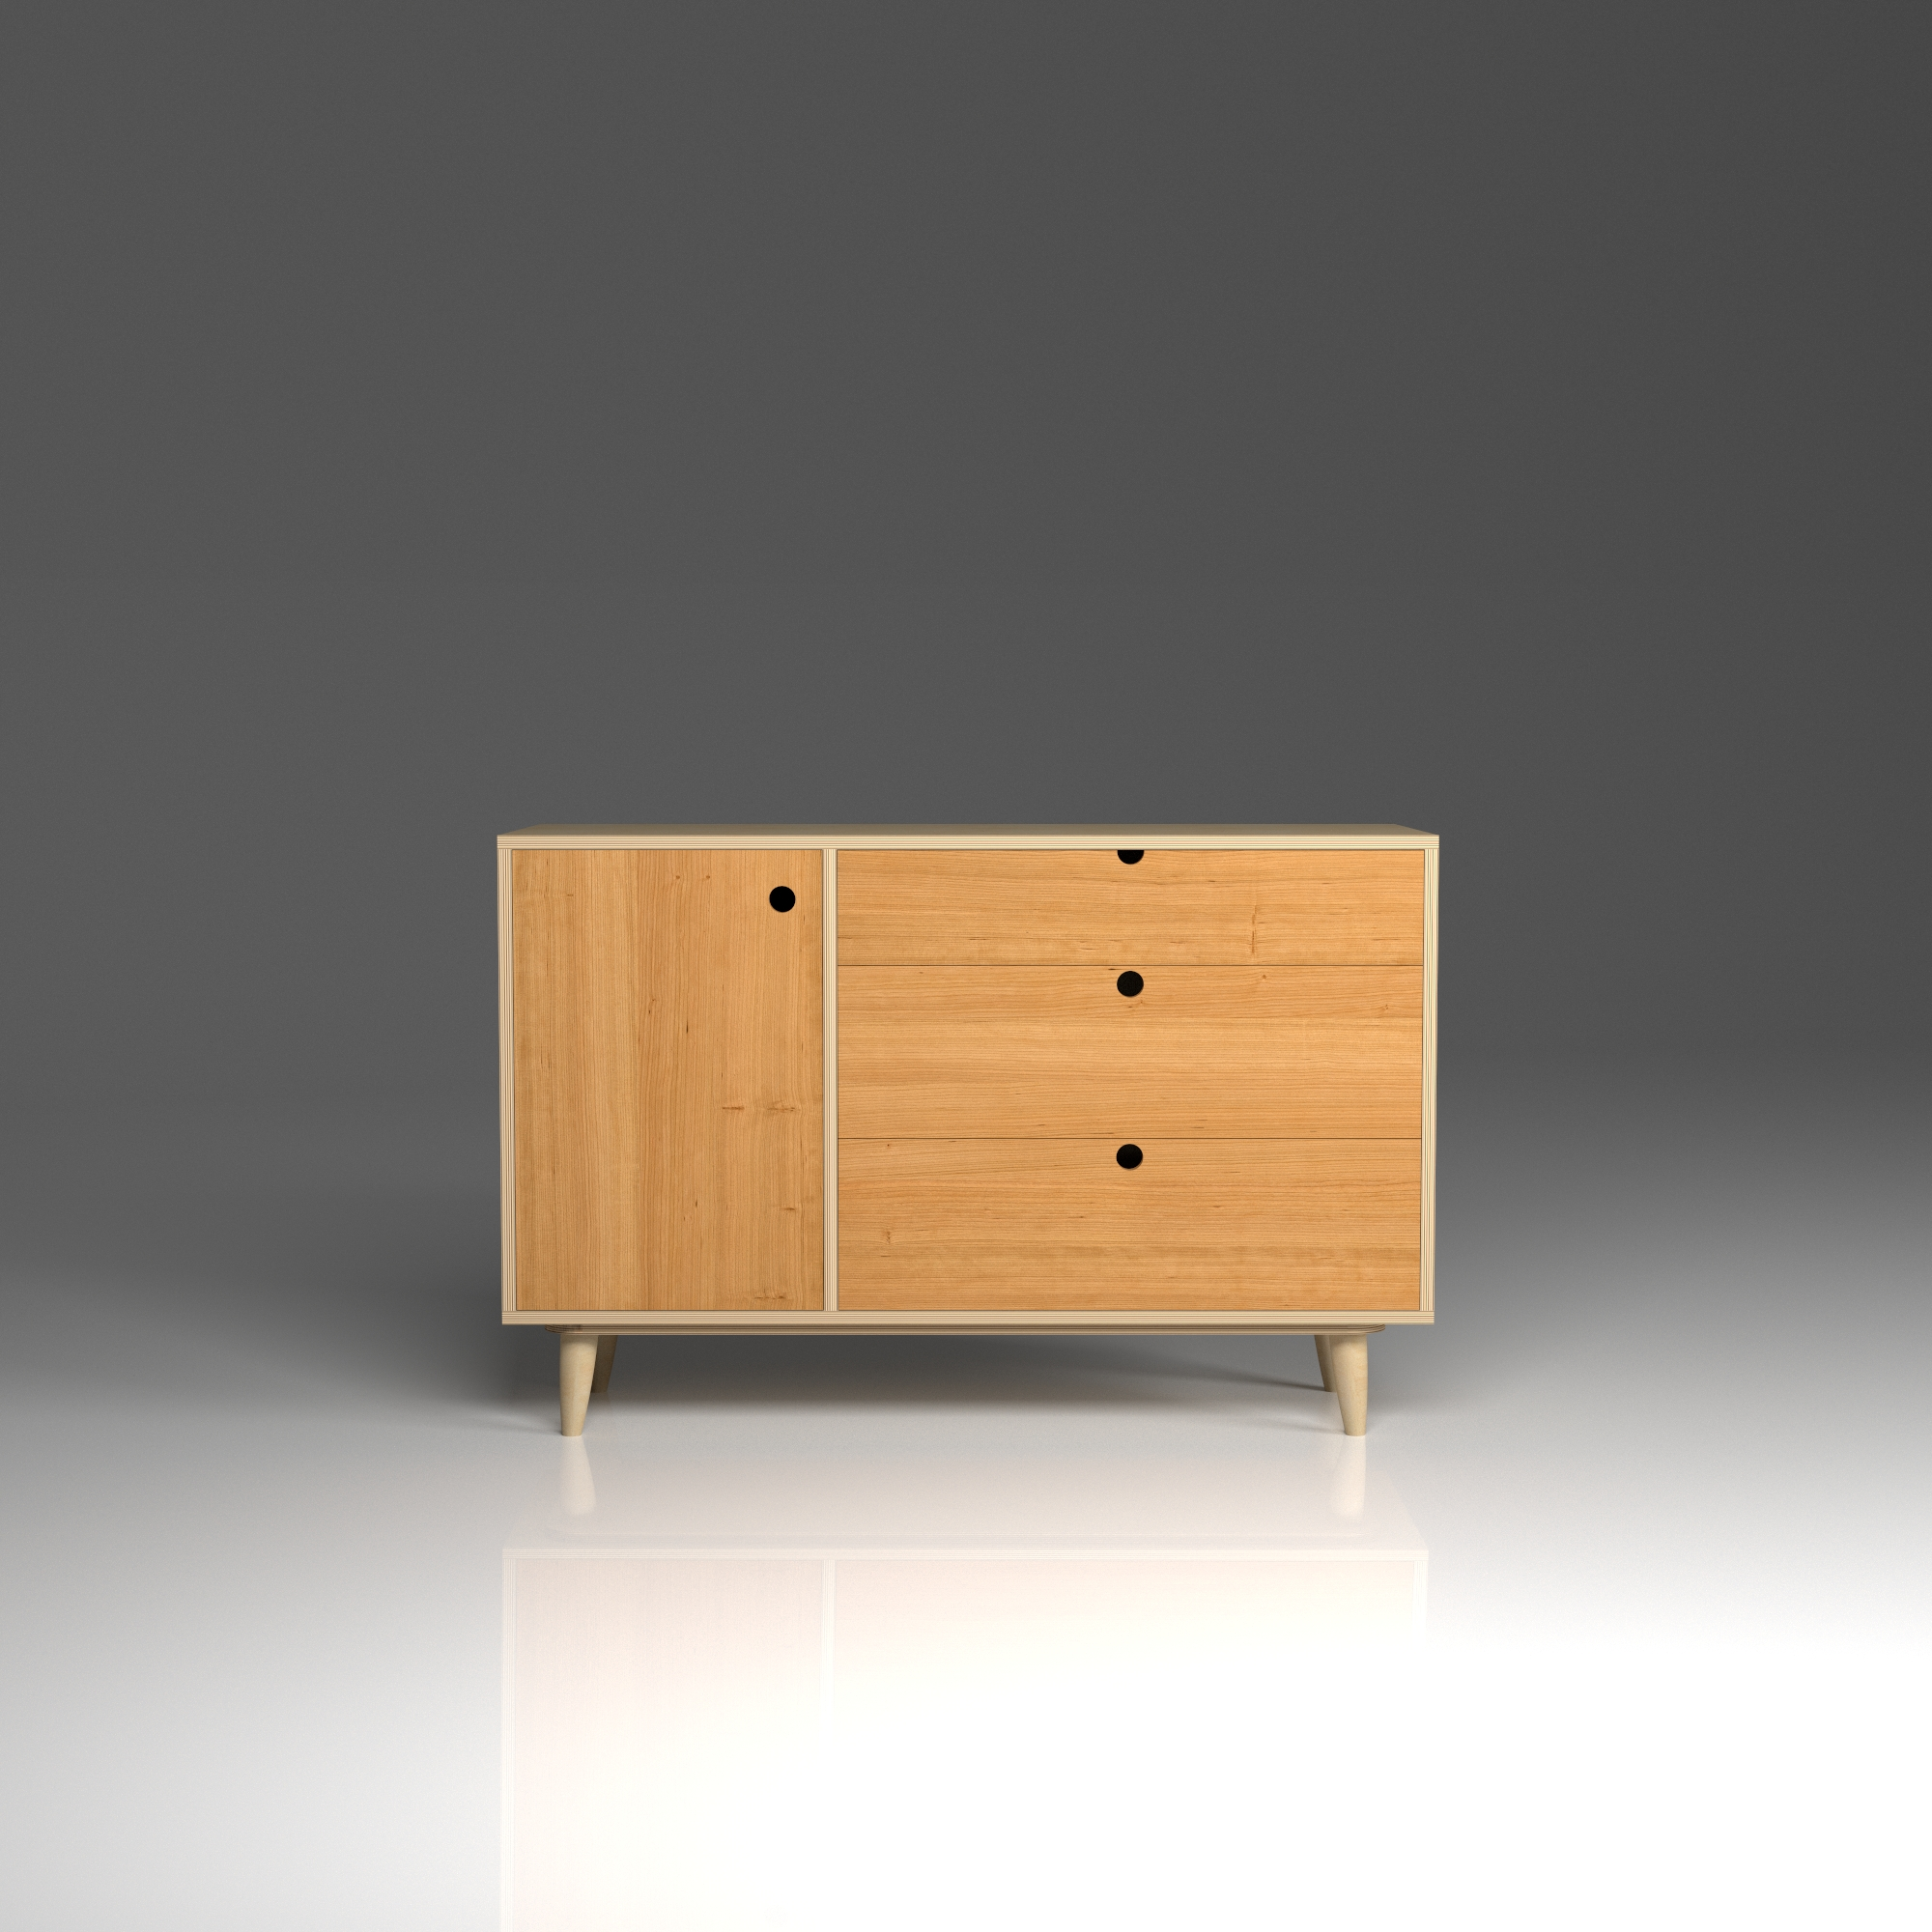 Sideboard 3 (SB3) in Cherry   Birch plywood sideboard with hardwood cherry fronts. Versatile piece that would fit beautifully in any room in the house.